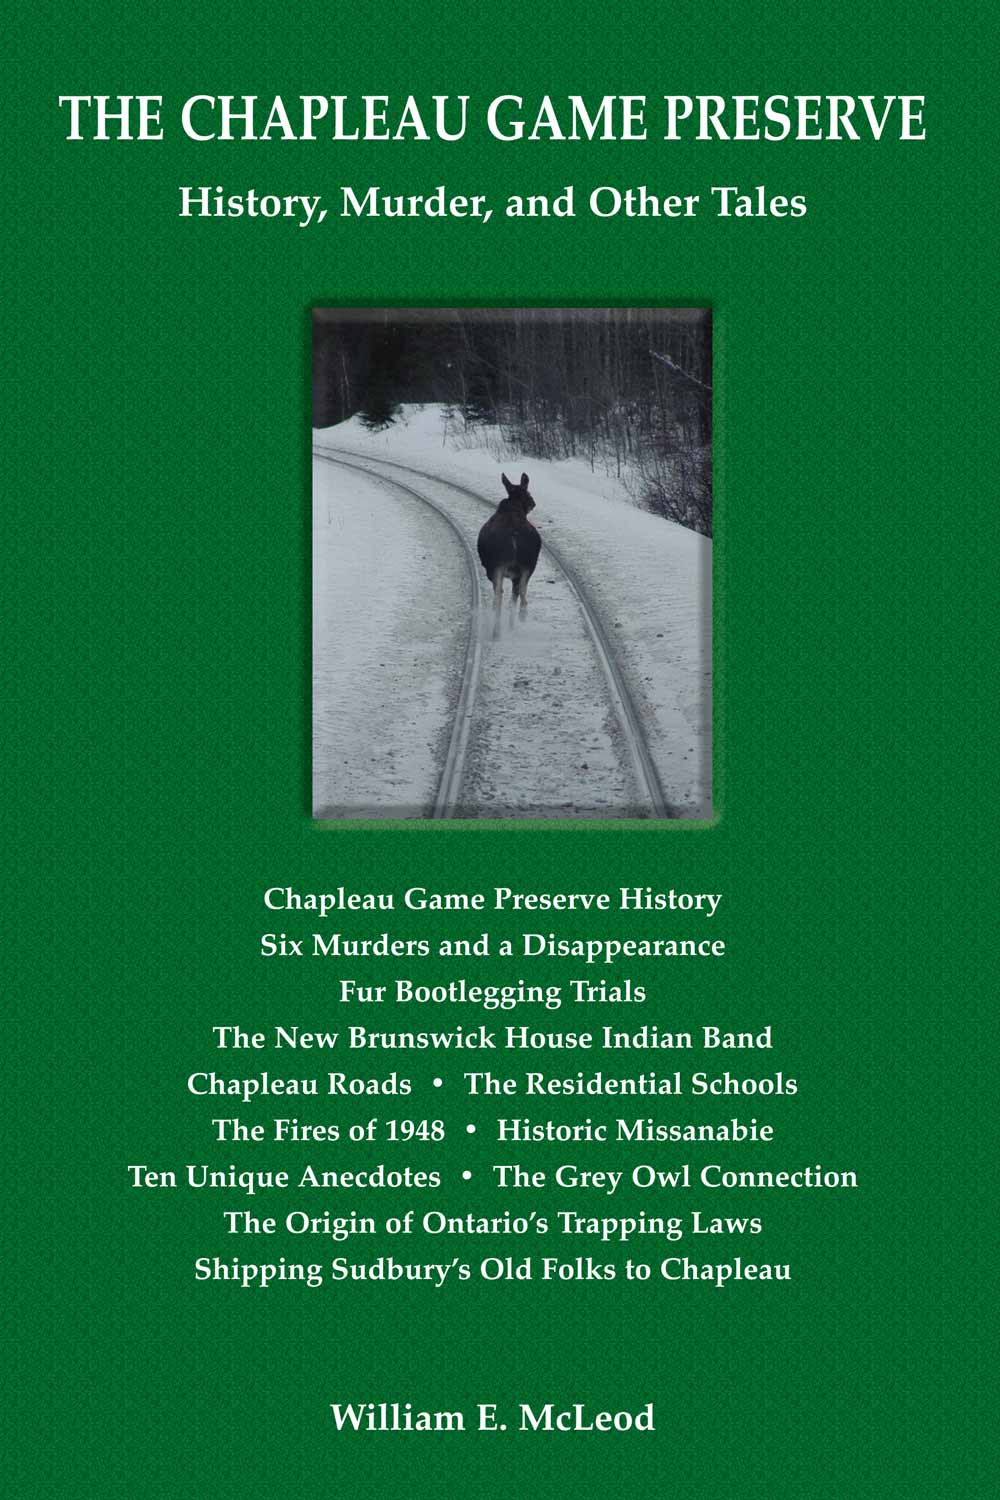 The Chapleau Game Preserve: History, Murder, and Other Tales